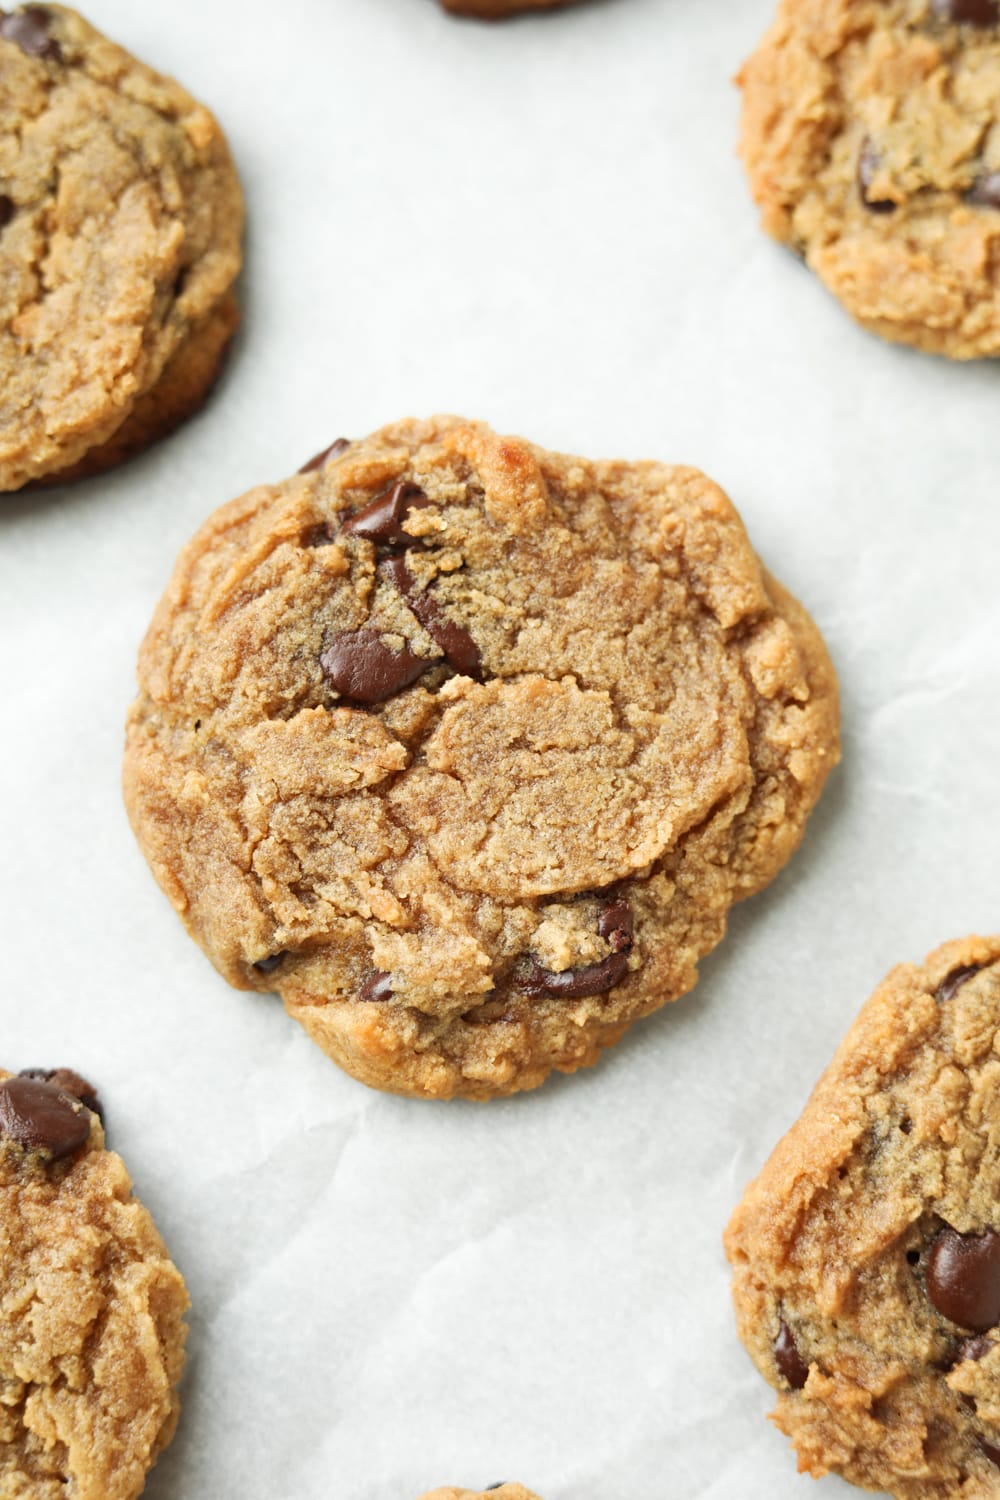 Chocolate chip cookies on parchment paper.